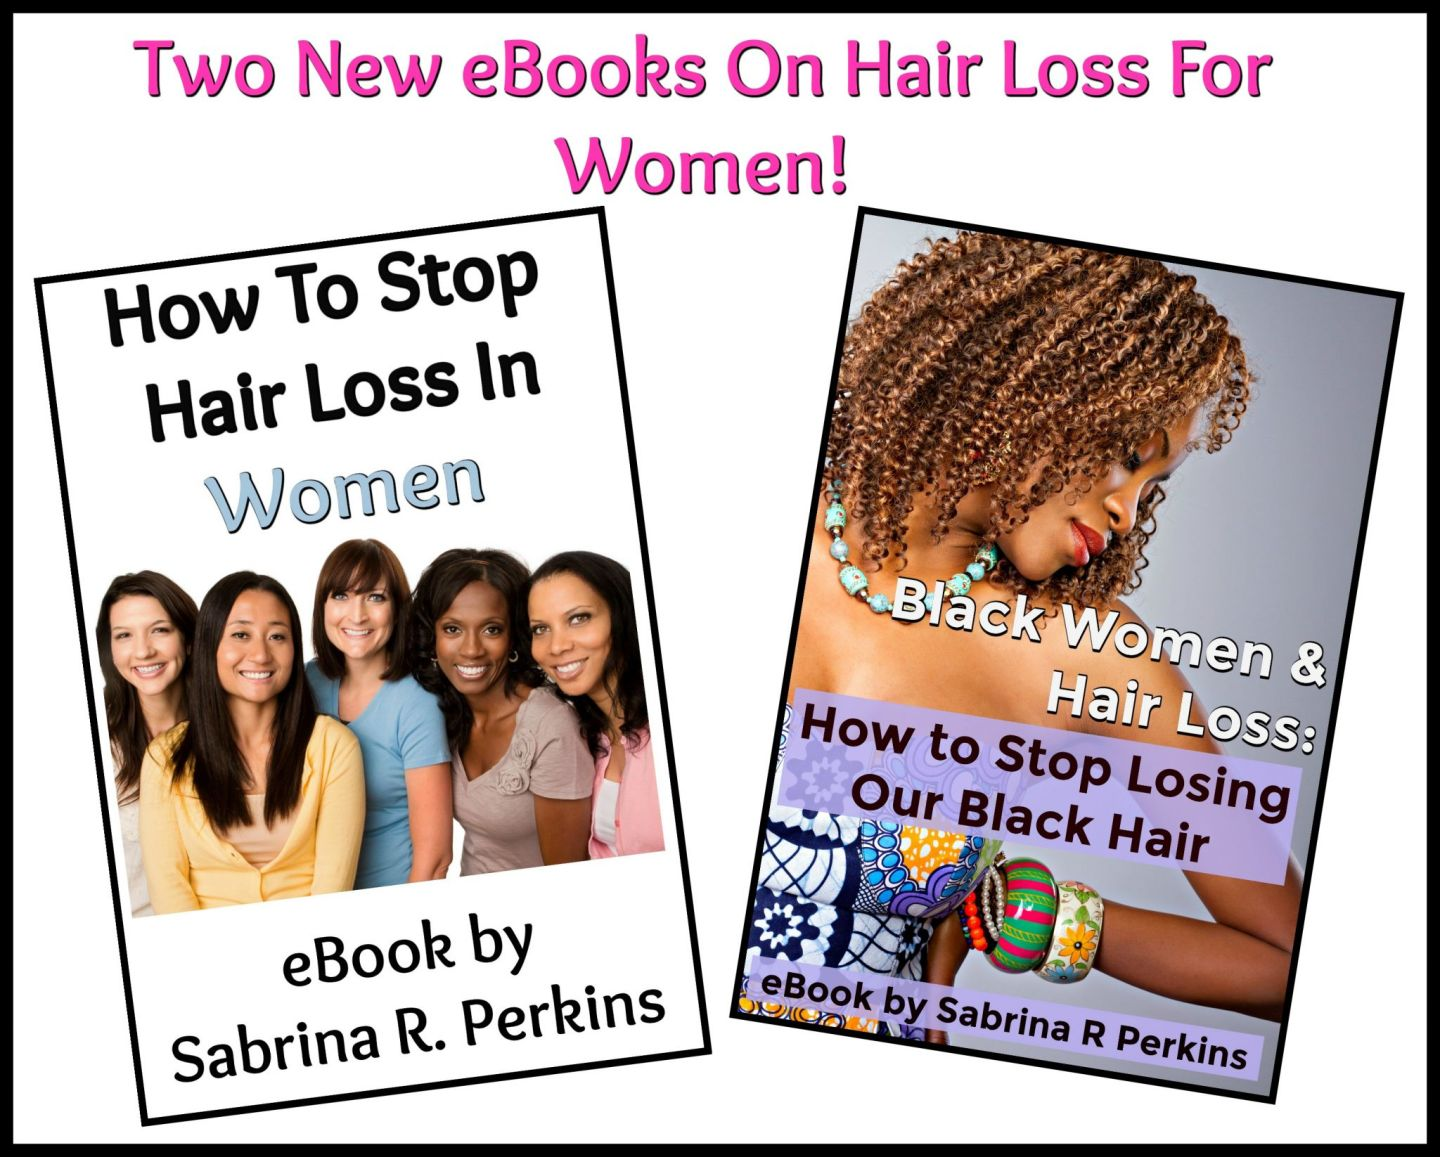 New eBook On Hair Loss In Women & One Specifically For Black Women